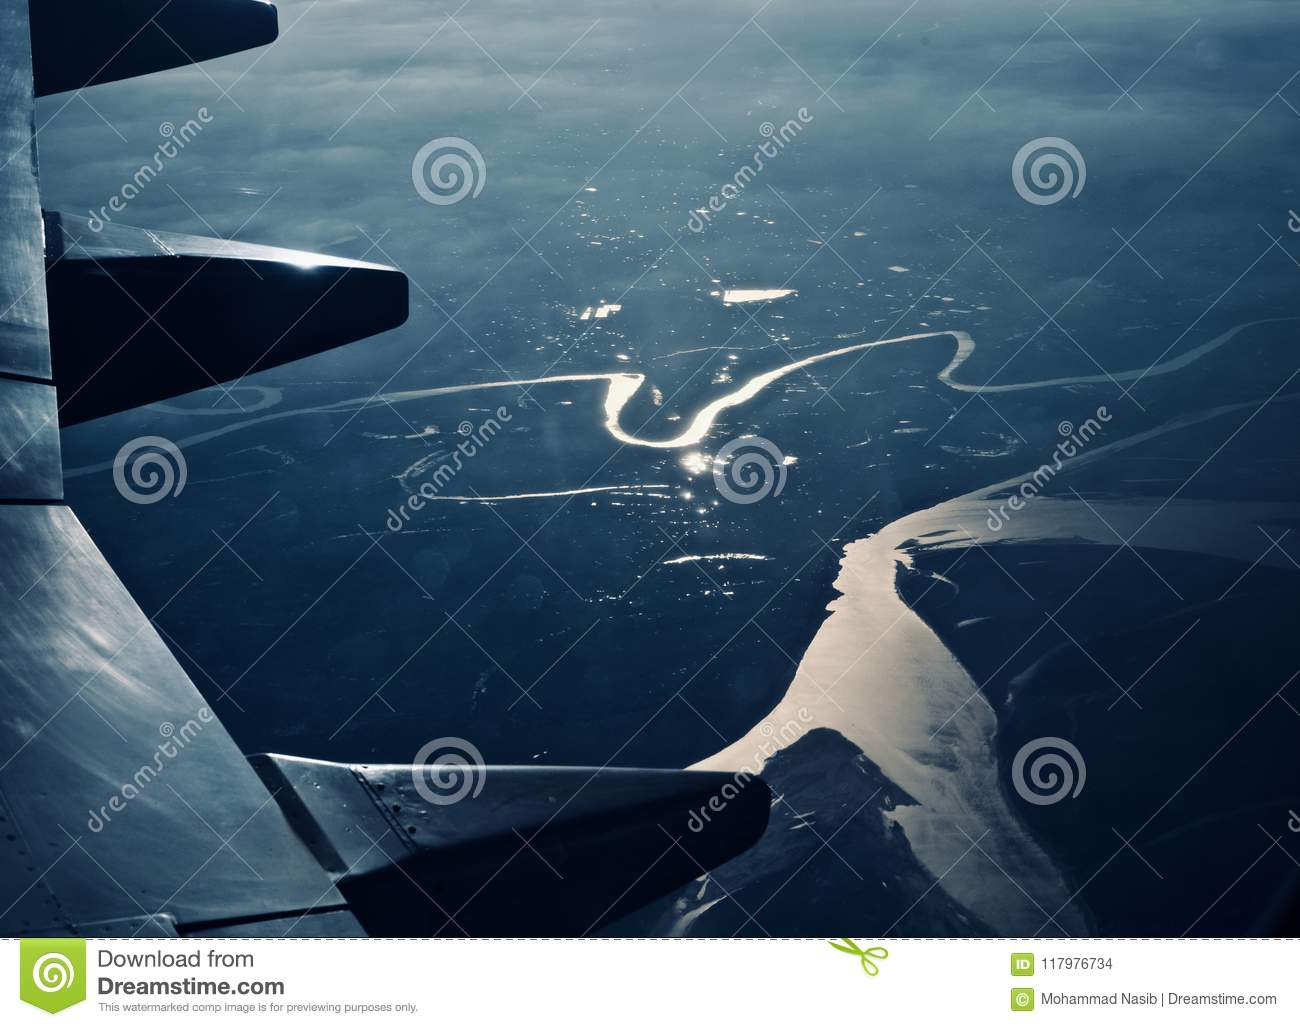 Download Right Wings Of An Airplane With Sky Background Image Stock Photo - Image of unique, wings: 117976734